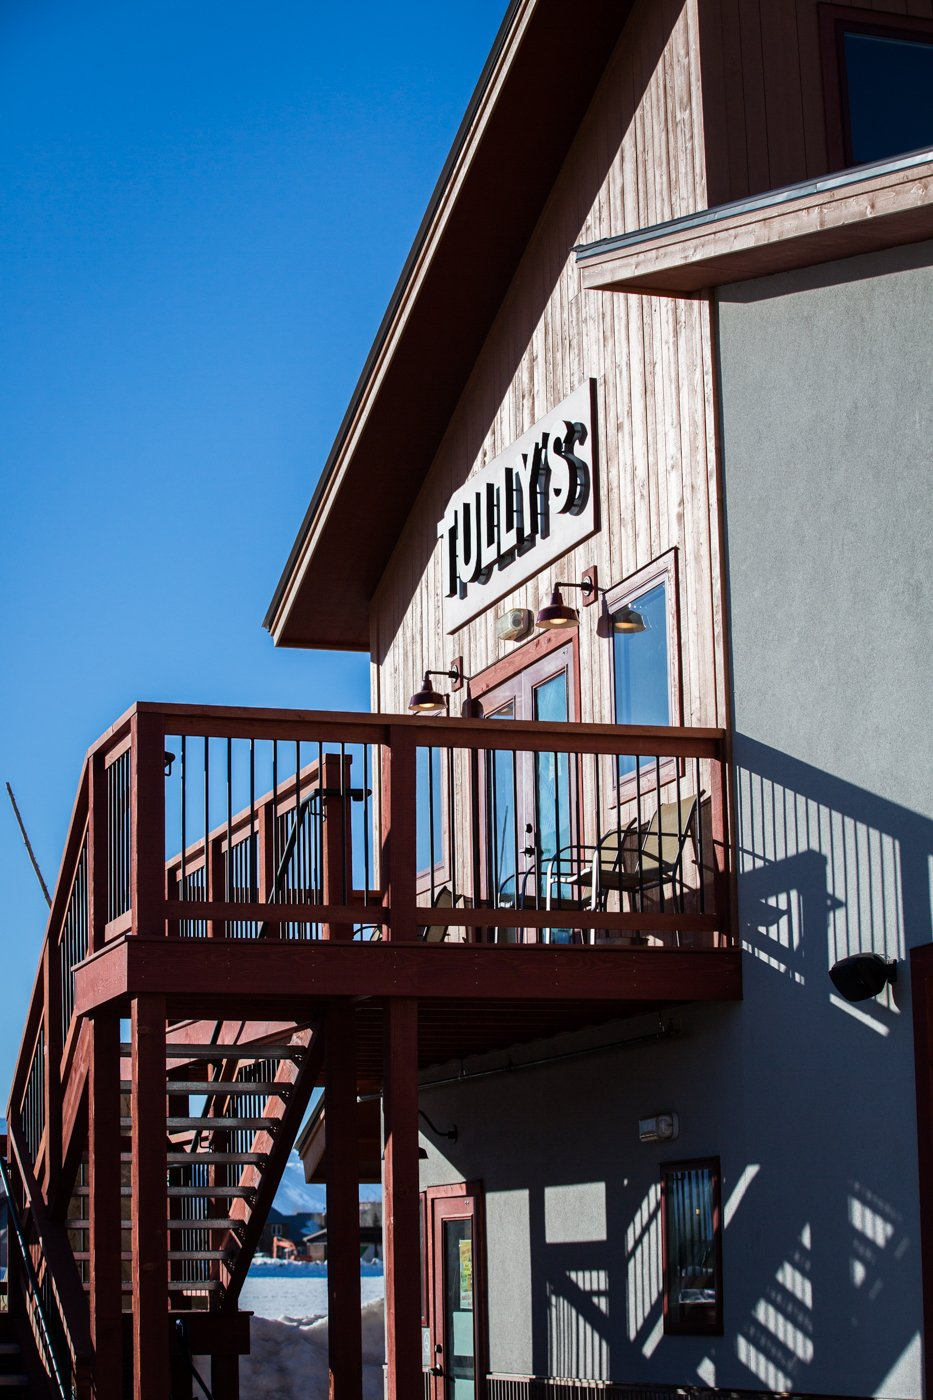 Tully's outside sign